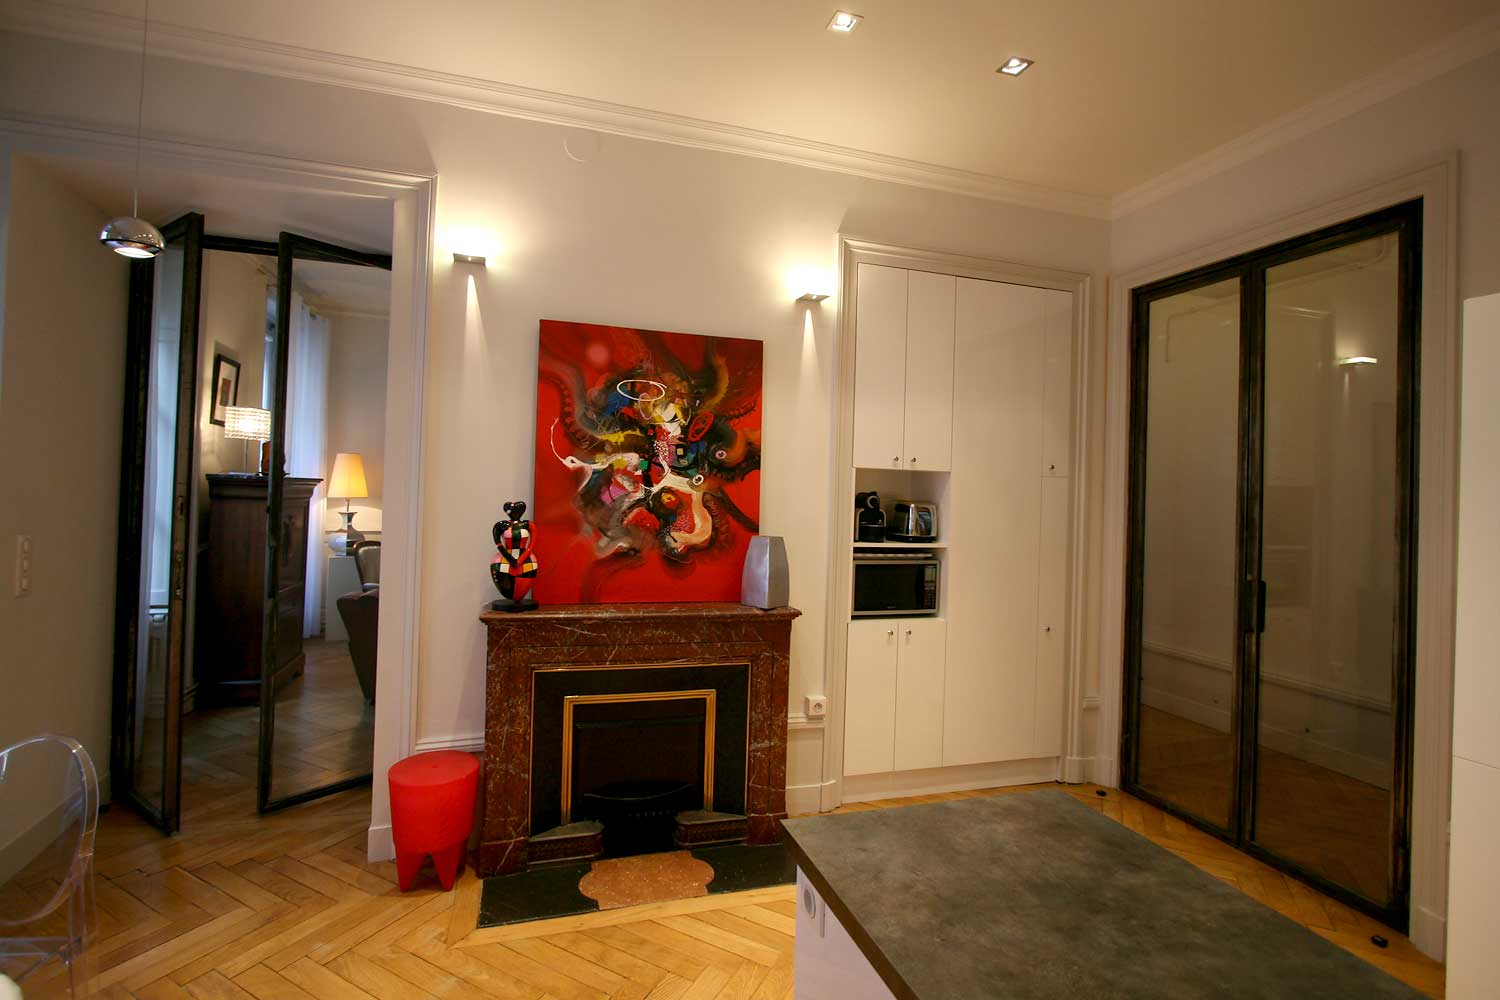 Location appartement Nantes : Choisir le bon appartement